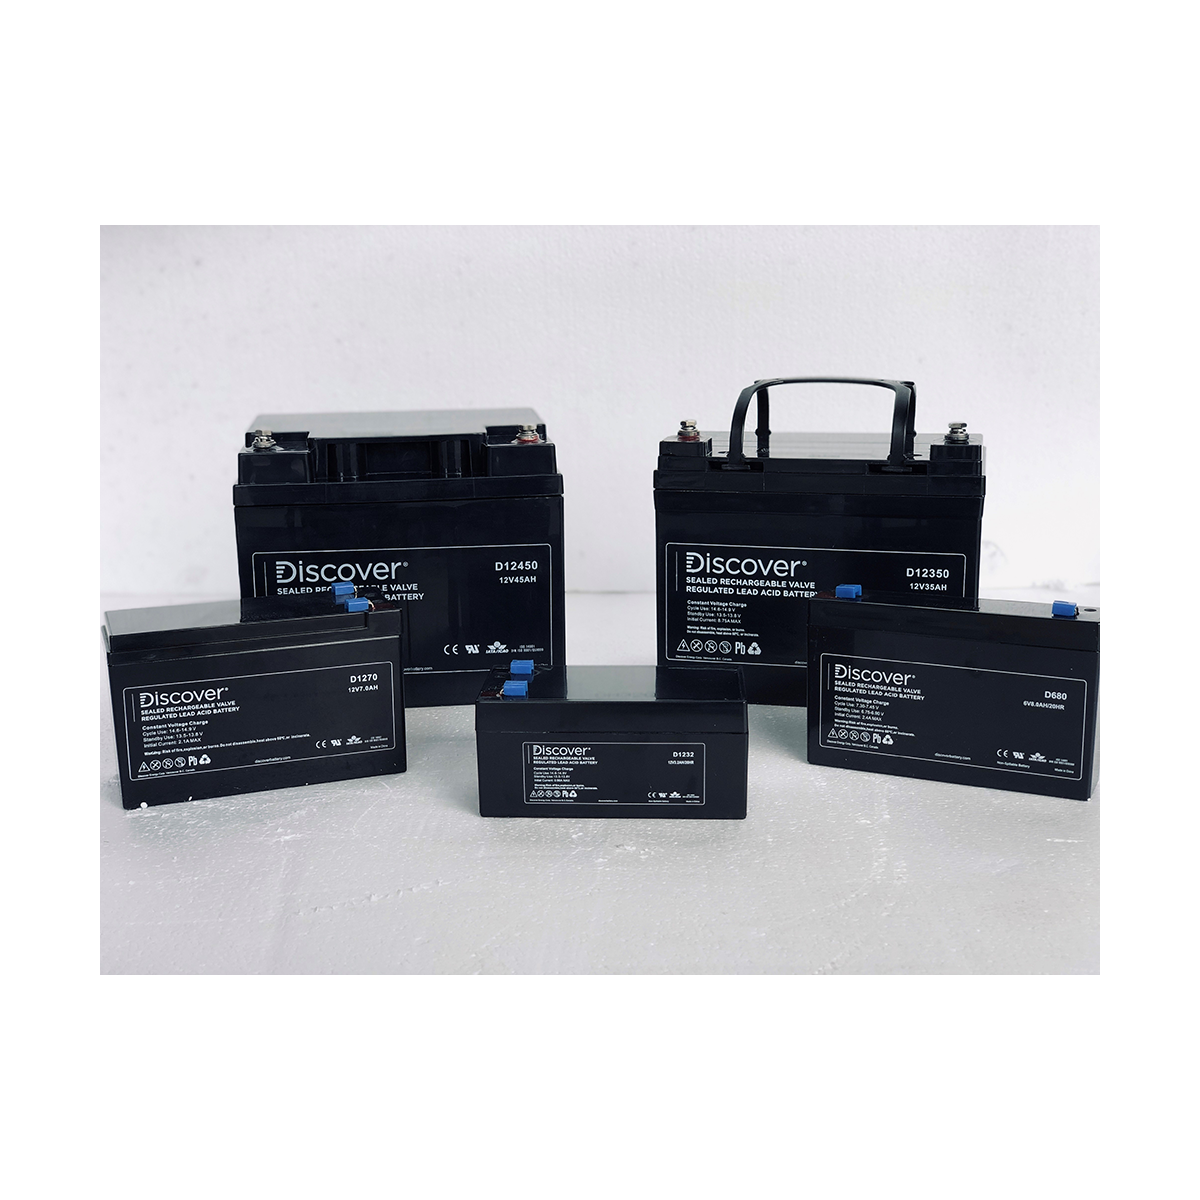 DISCOVER 12V 35AH AGM BATTERY